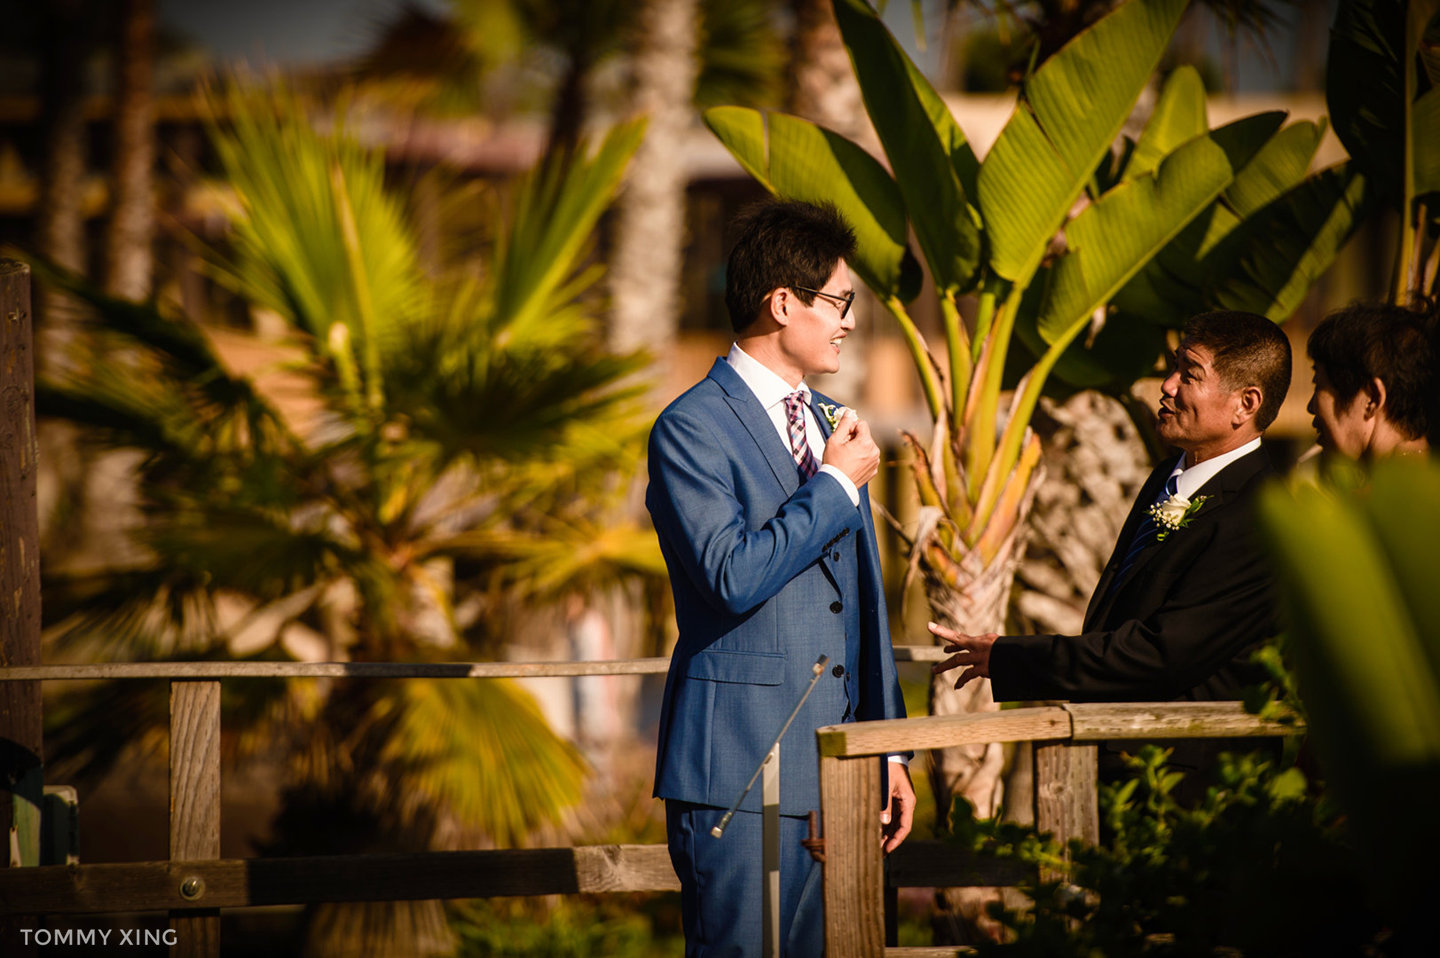 Paradise Point Resort Wedding Xiaolu & Bin San Diego 圣地亚哥婚礼摄影跟拍 Tommy Xing Photography 洛杉矶婚礼婚纱照摄影师 082.jpg